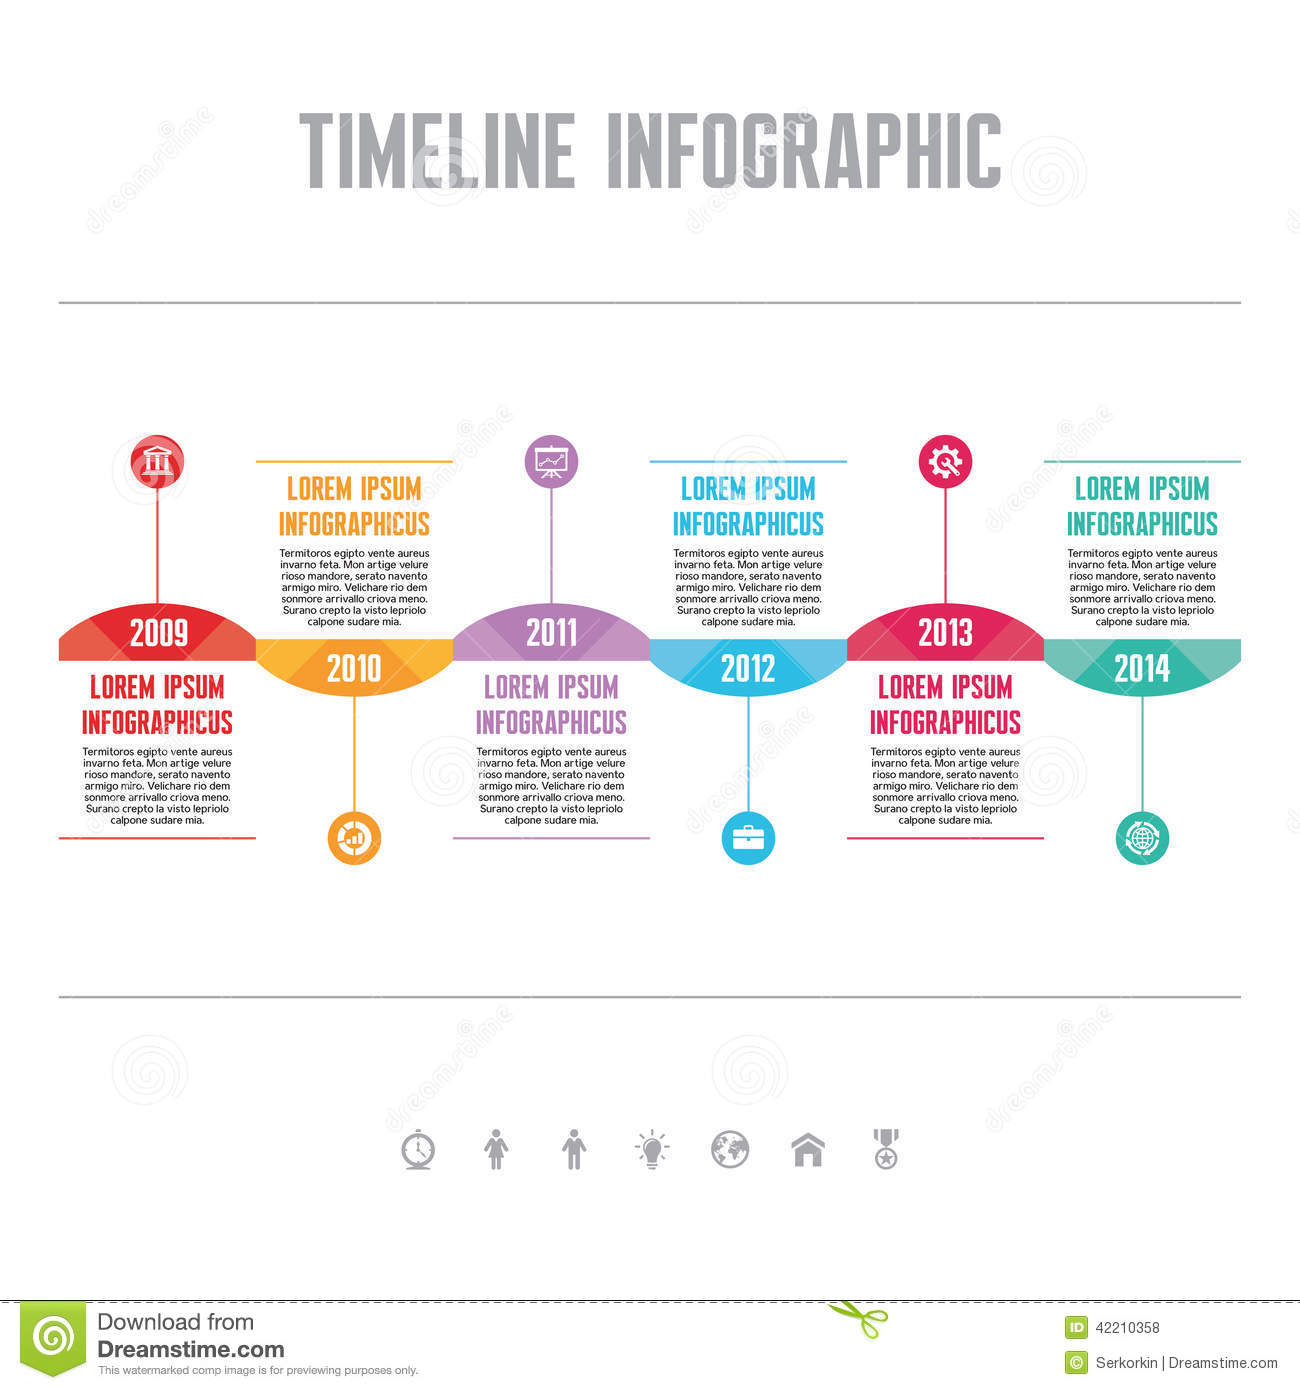 9 Infographics Timeline Design Template Images - Free ...  Creative Timeline Project Ideas